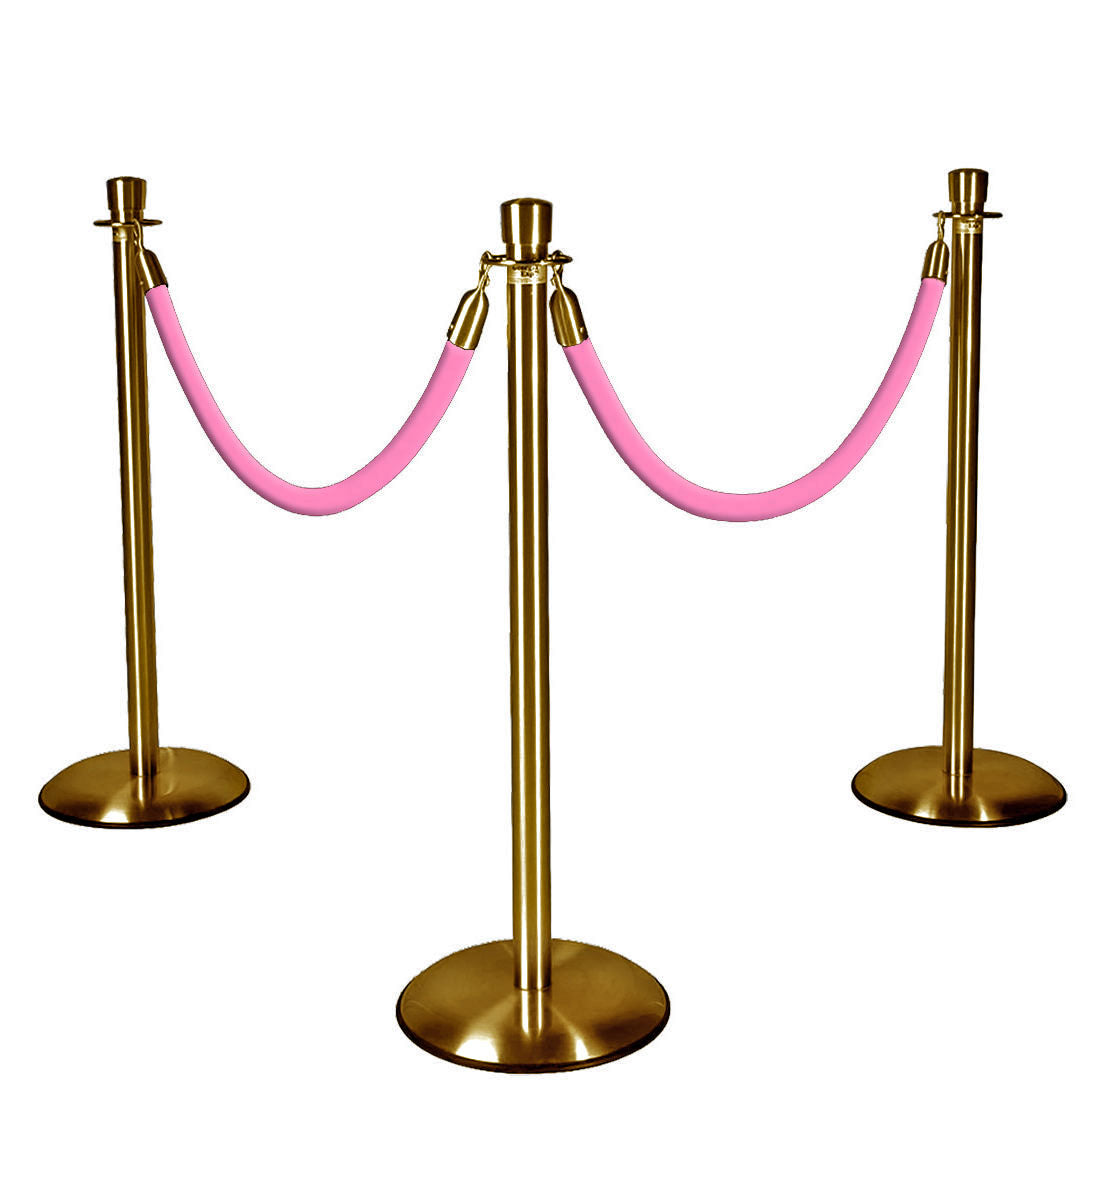 Gold Stanchions w/ Pink Ropes